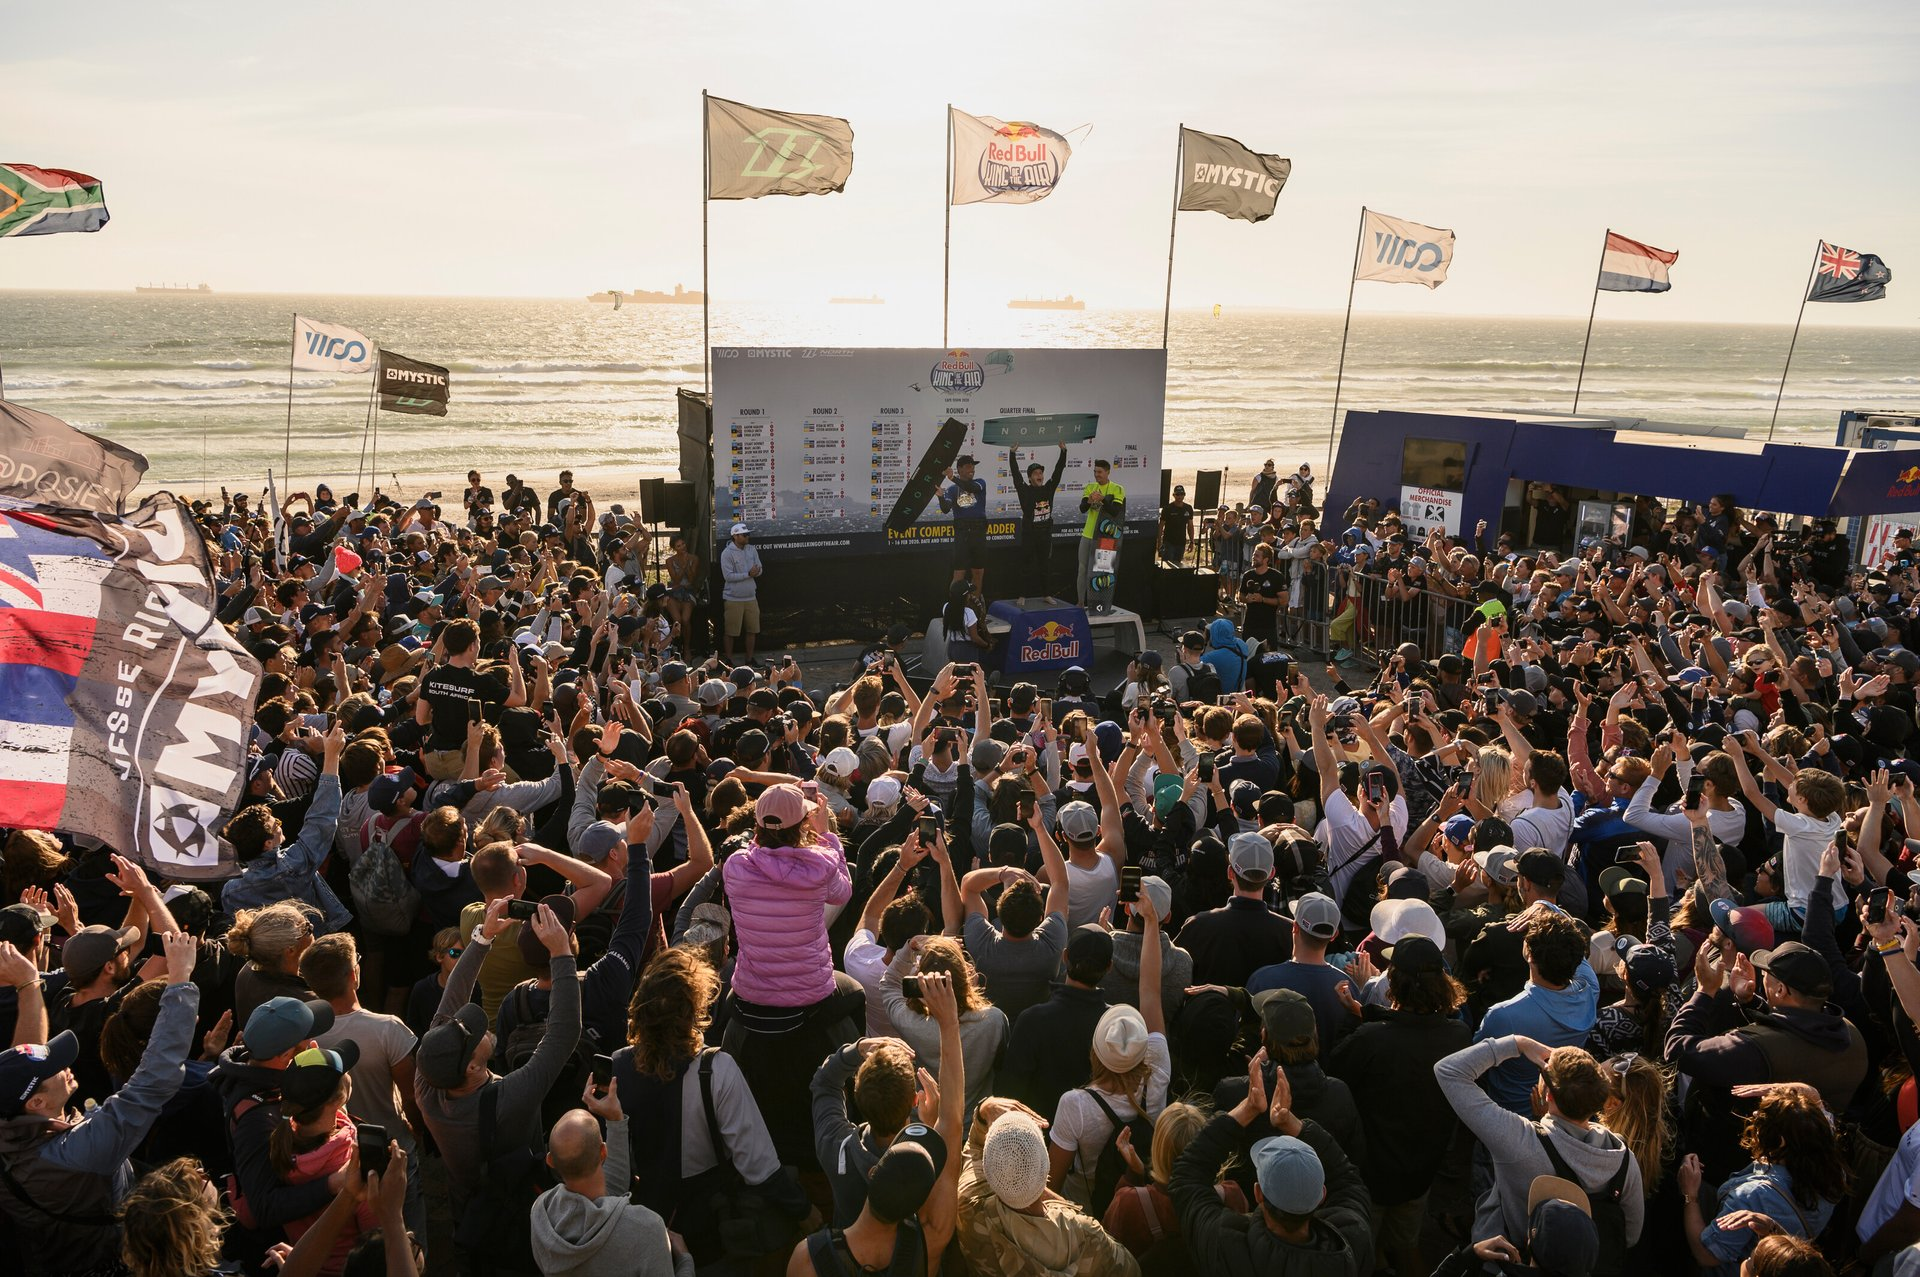 Jesse Richman is seen on the podium at Red Bull King Of The Air in Cape Town, South Africa 2020